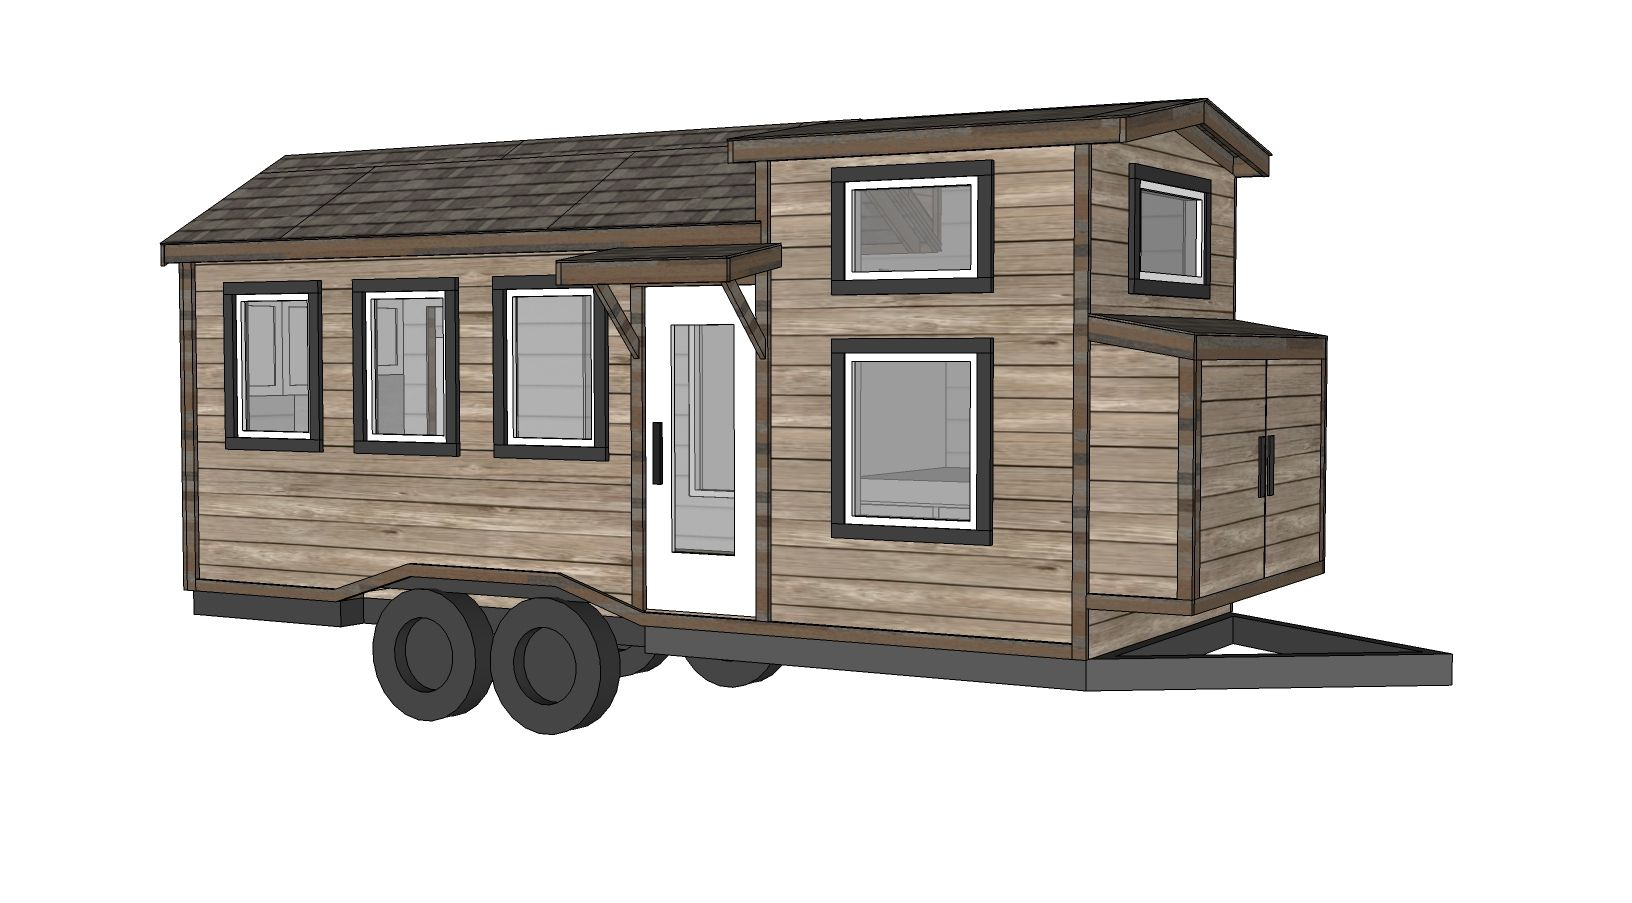 Achat Remorque Tiny House tiny house with bathroom free plans - ana-white | plans